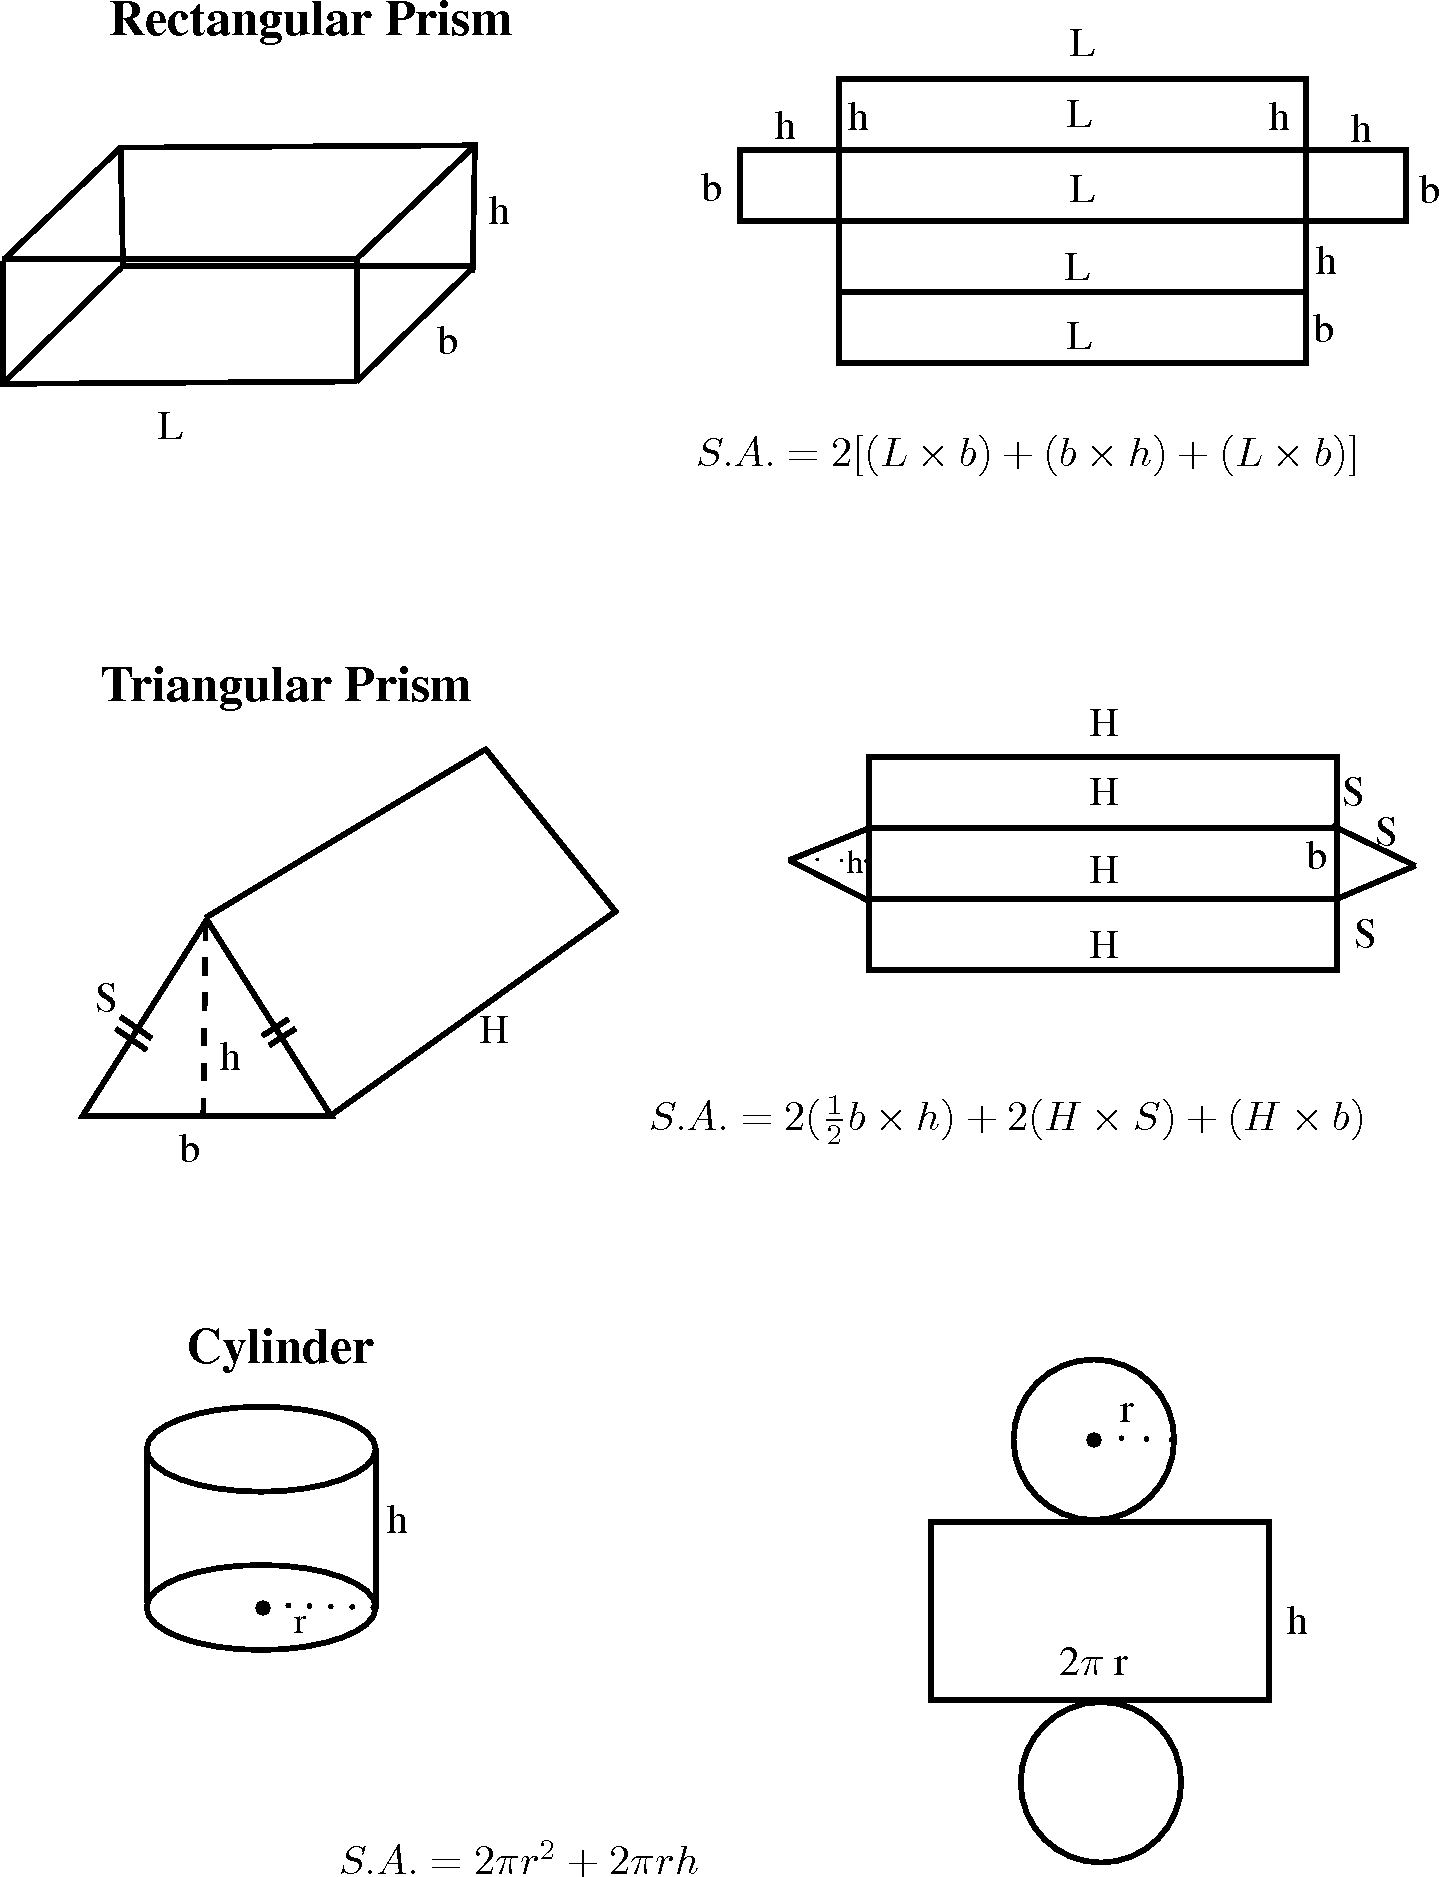 worksheet Volume Of A Triangular Prism Worksheet volume of a rectangular prism worksheet free printable money math geometry grade 10 caps mg10c14 002 482d3755 48a5 4acd 9afb 19535505a23a re